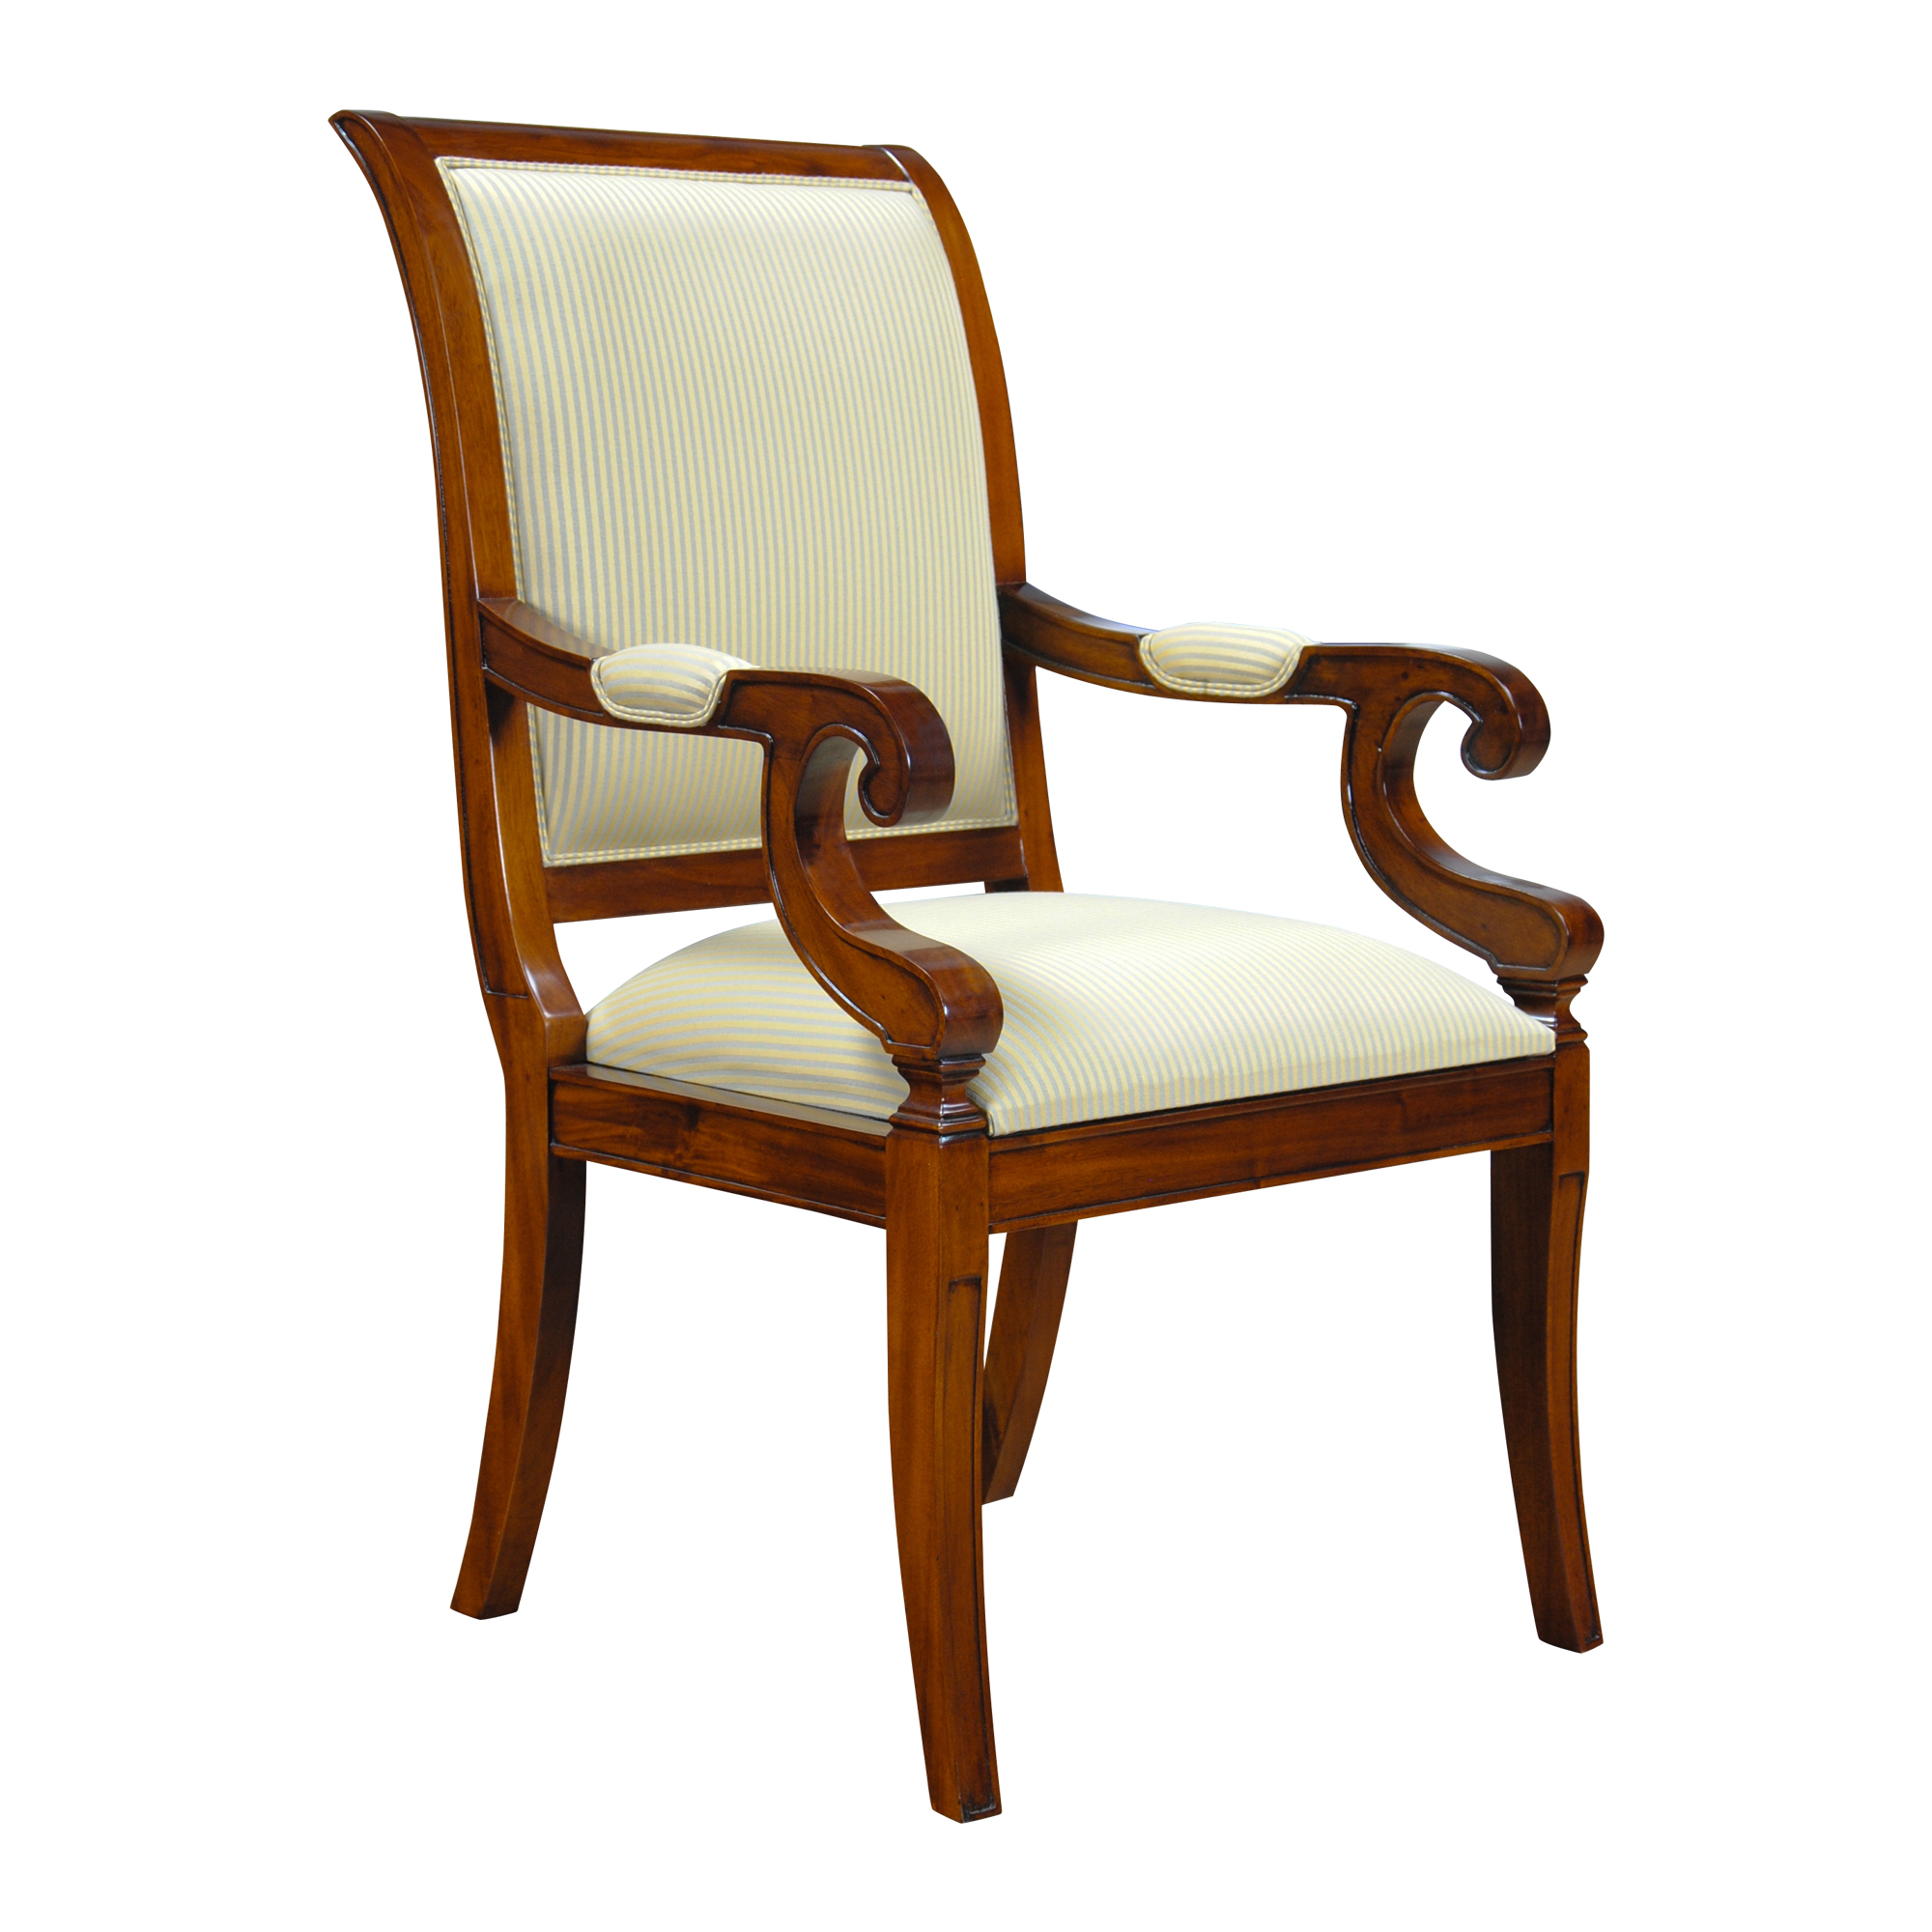 Regency upholstered dining chair niagara furniture solid for Dining chairs with upholstered seats